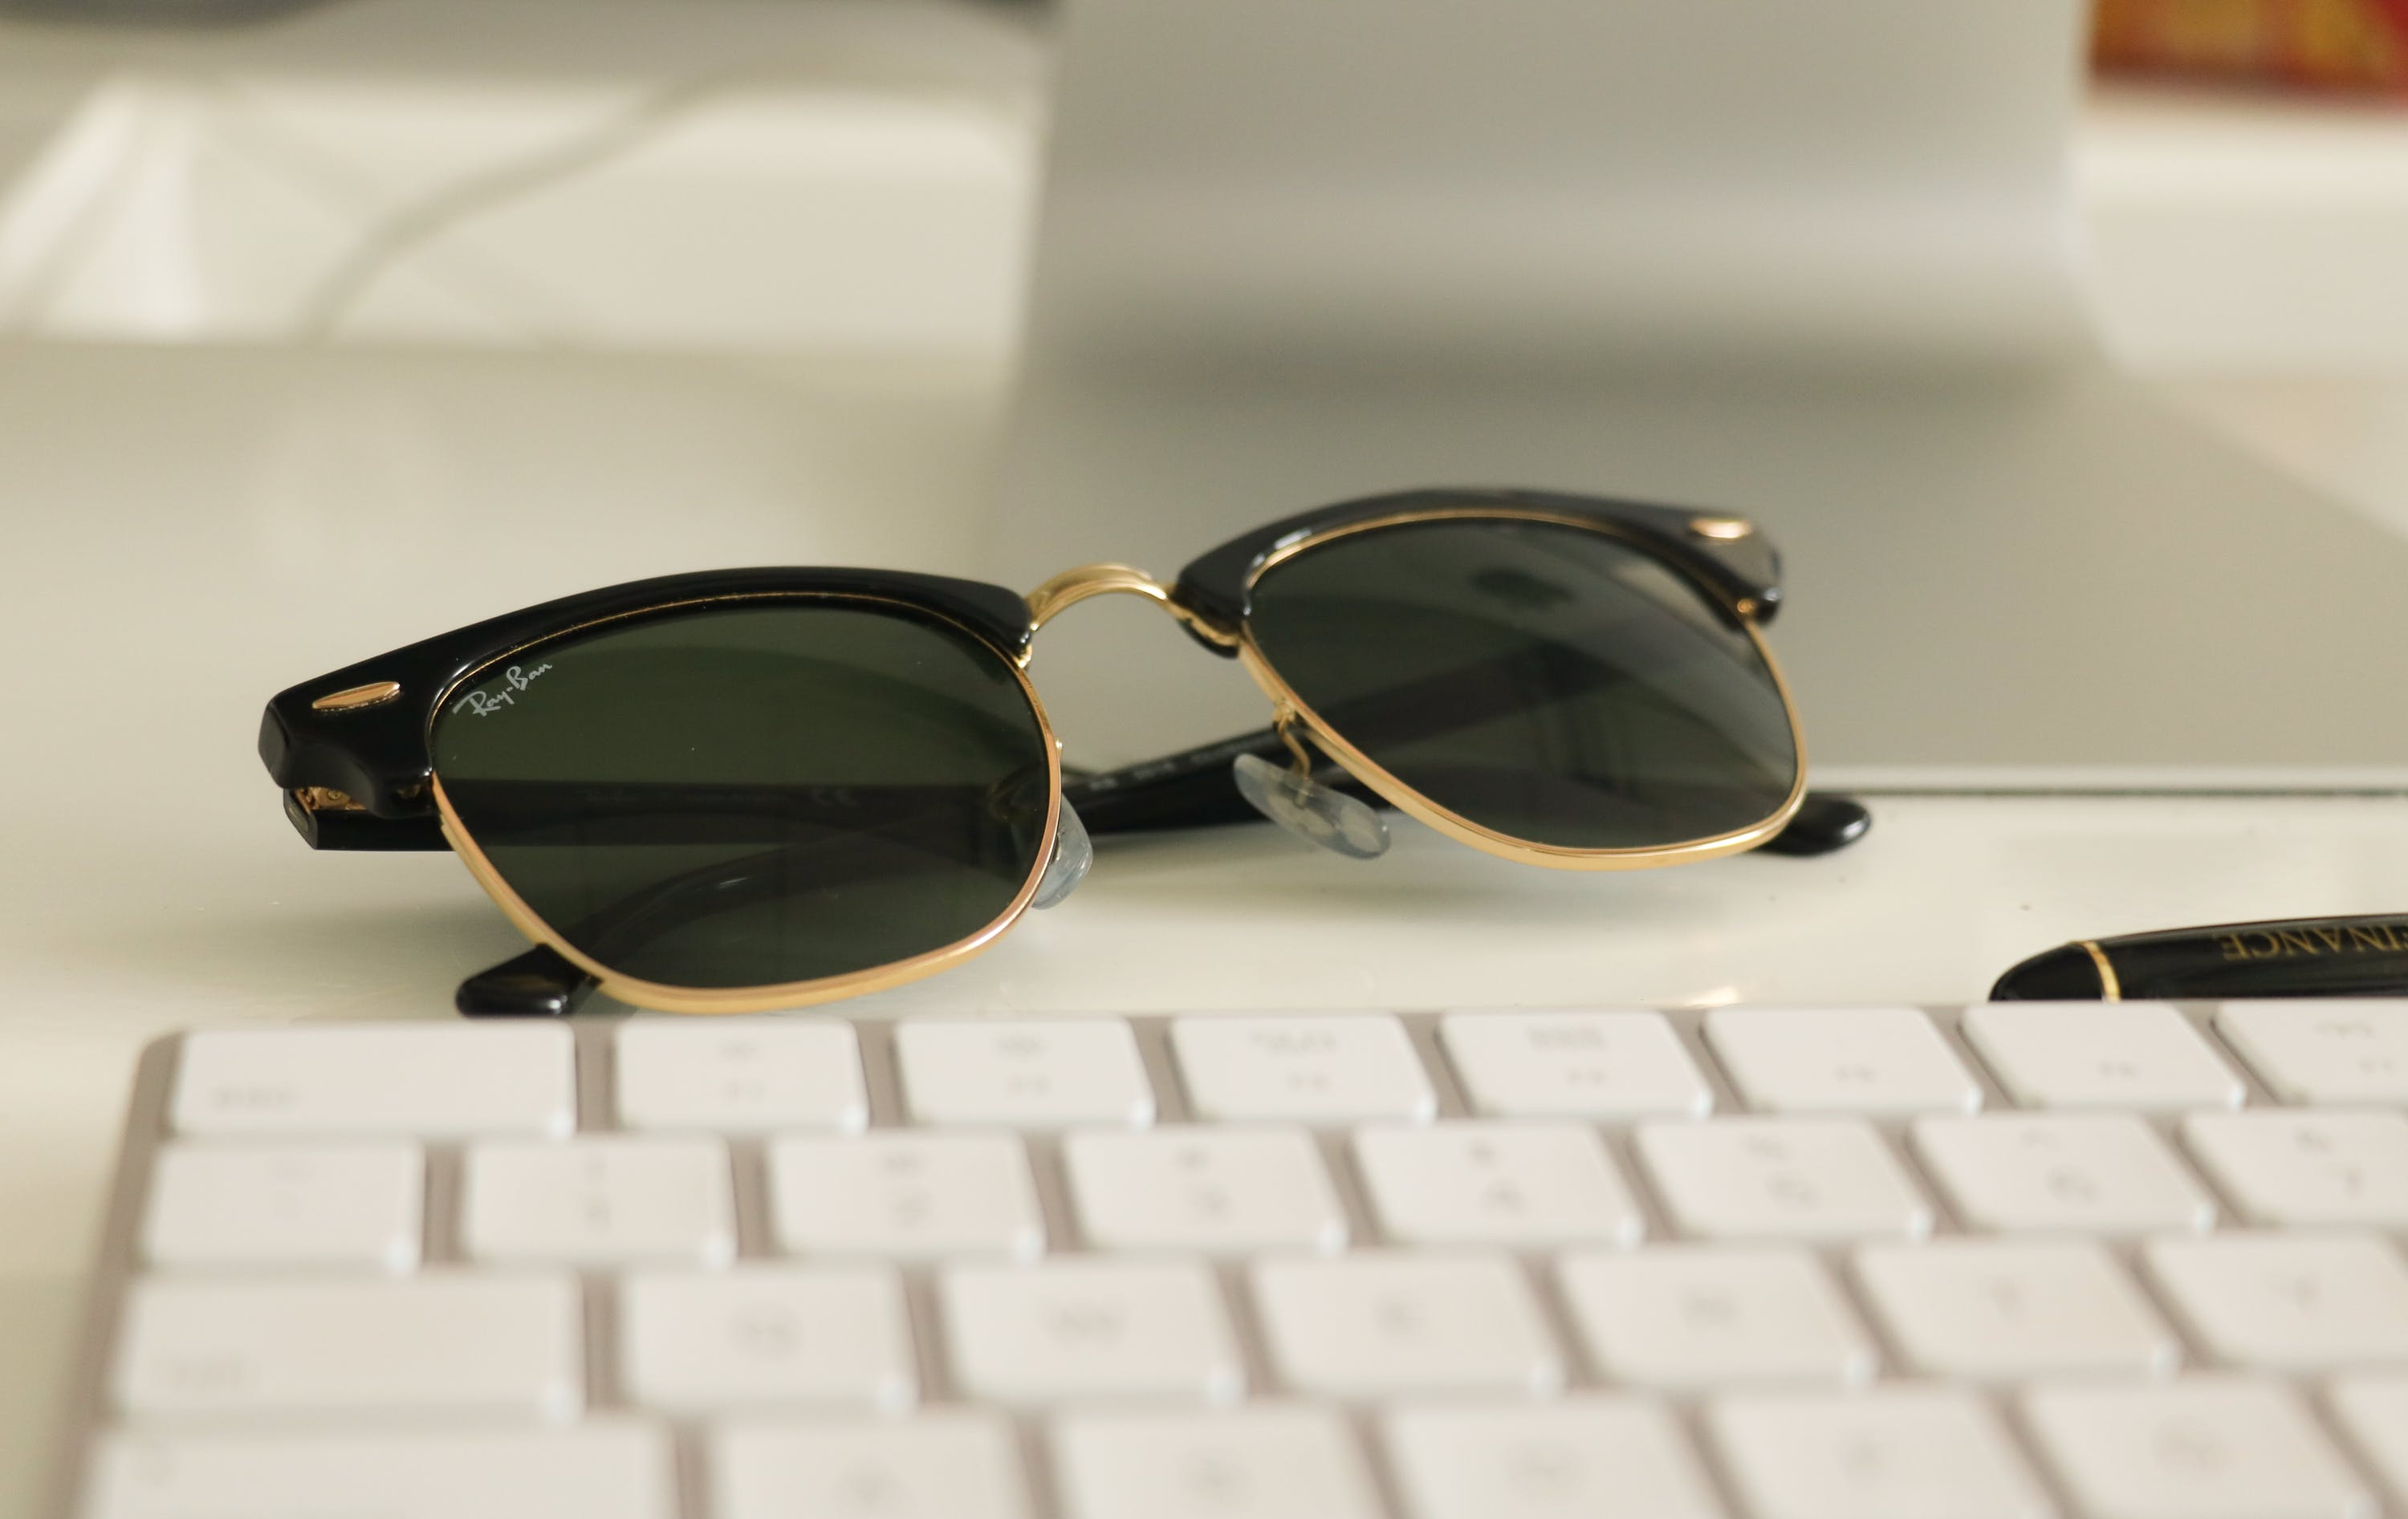 Black Ray-ban Clubmaster Sunglasses on White Surface